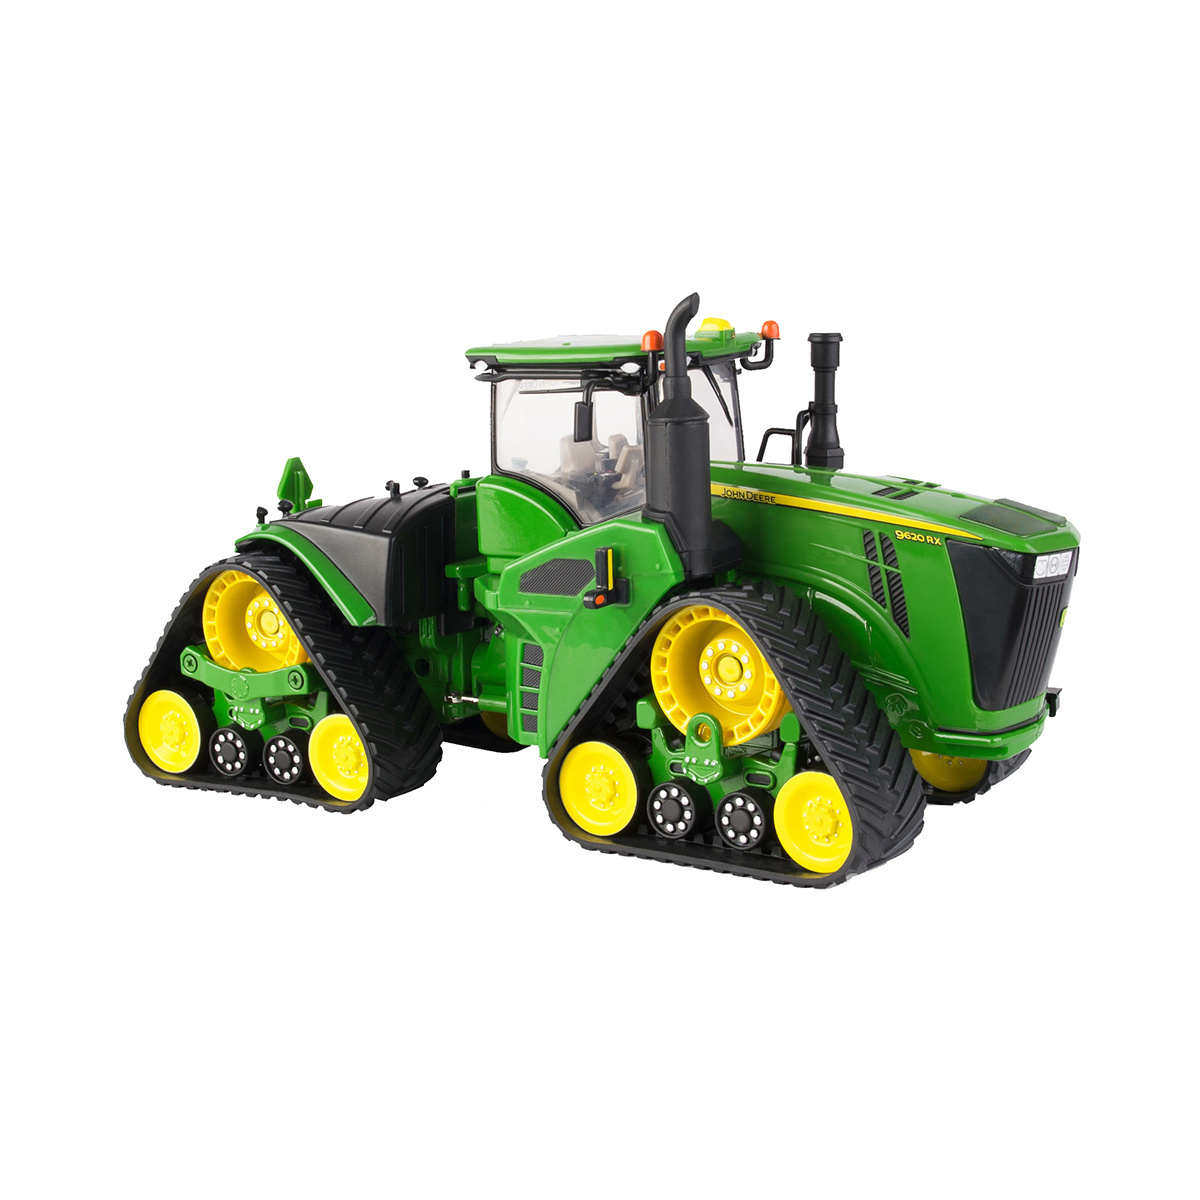 1:32 Scale | Replica Scale | Replicas | John Deere products